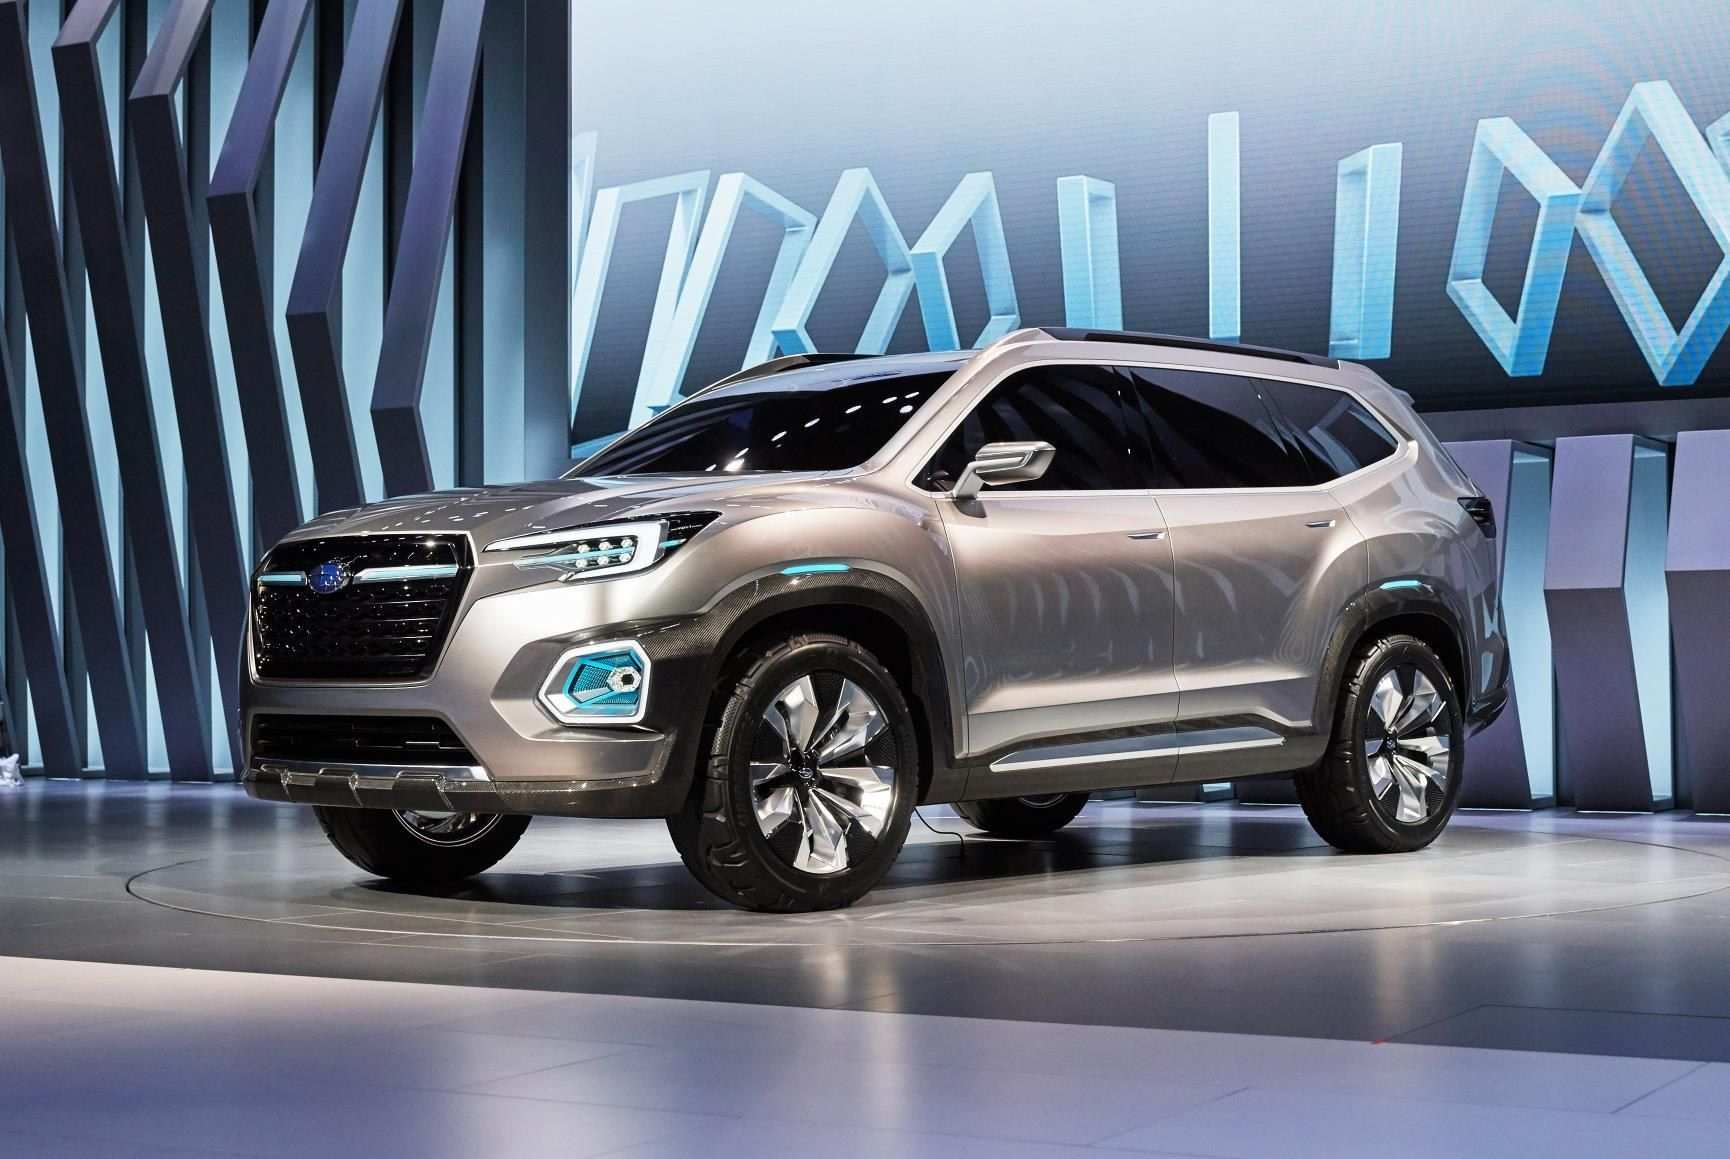 2020 Subaru Tribeca Engine